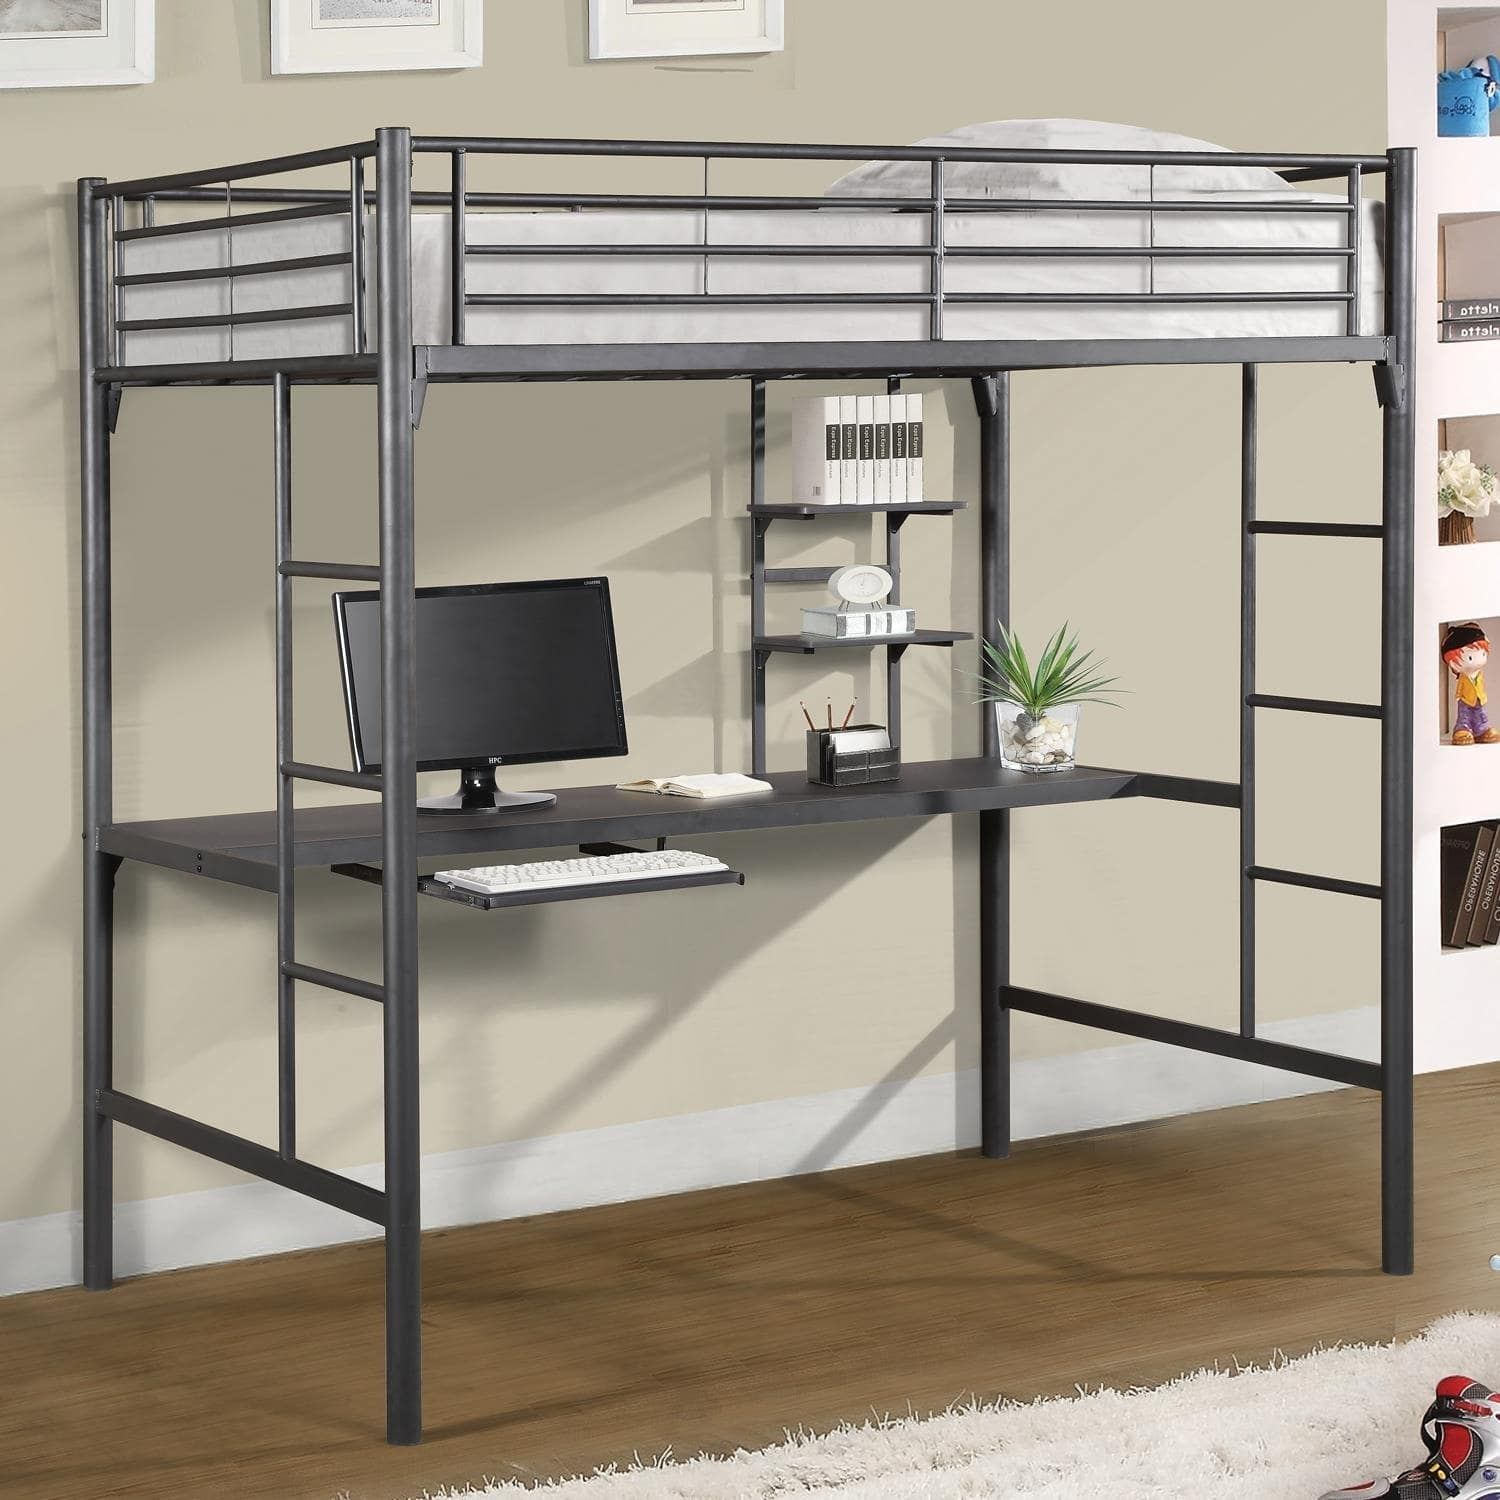 Home source bedroom furniture metal twin loft bed with workstation